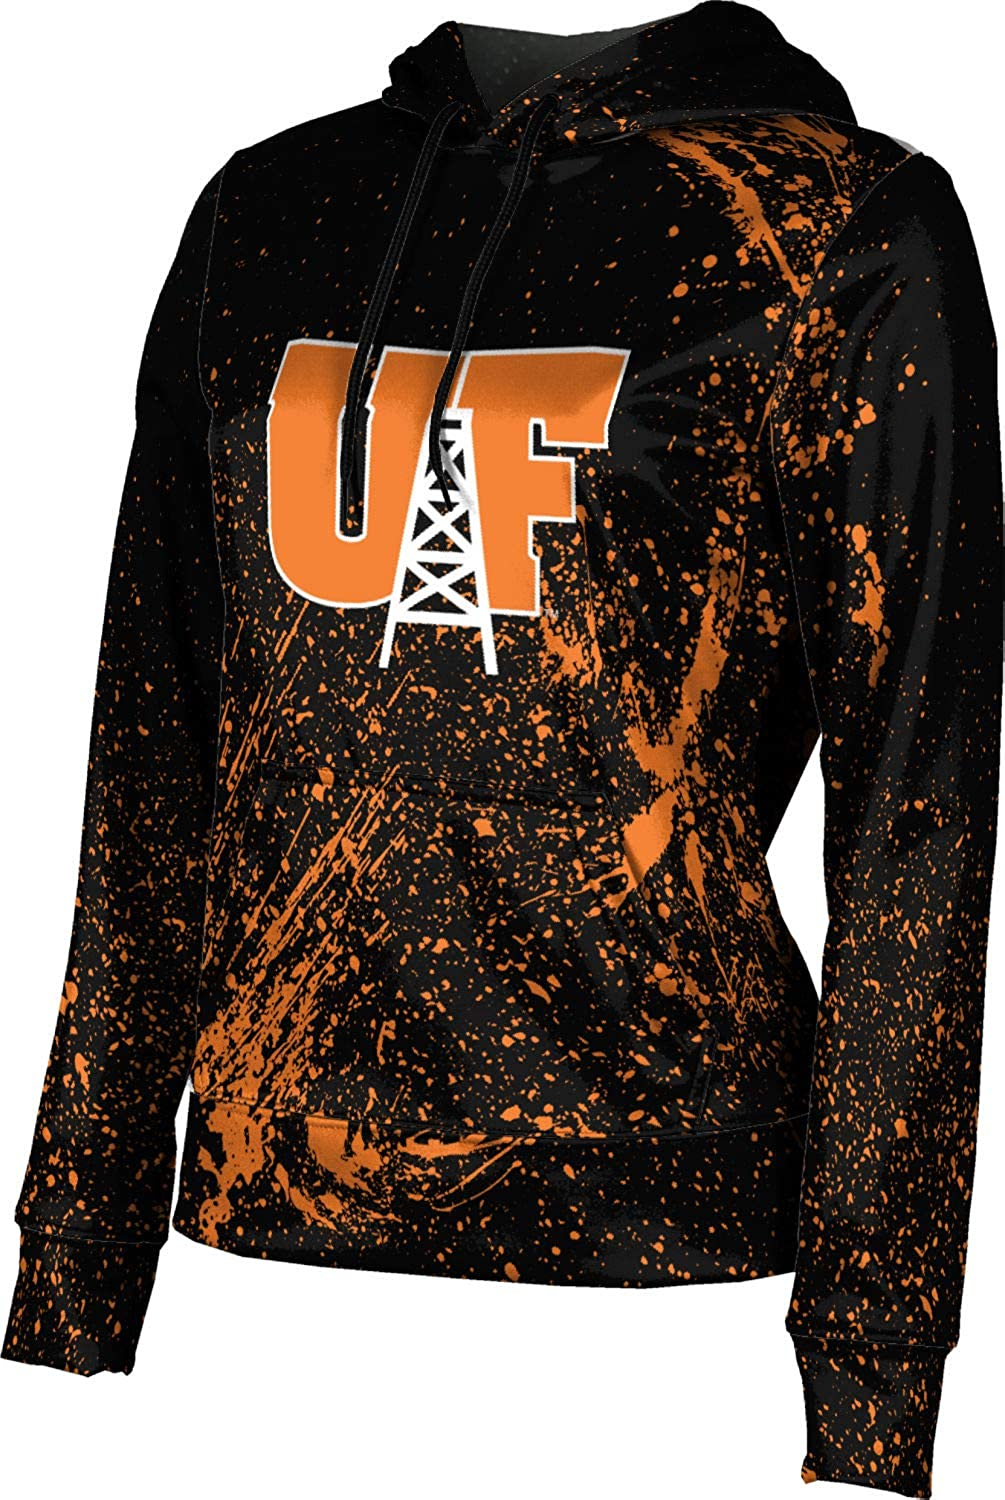 School Spirit Sweatshirt ProSphere University of Findlay Girls Pullover Hoodie Splatter